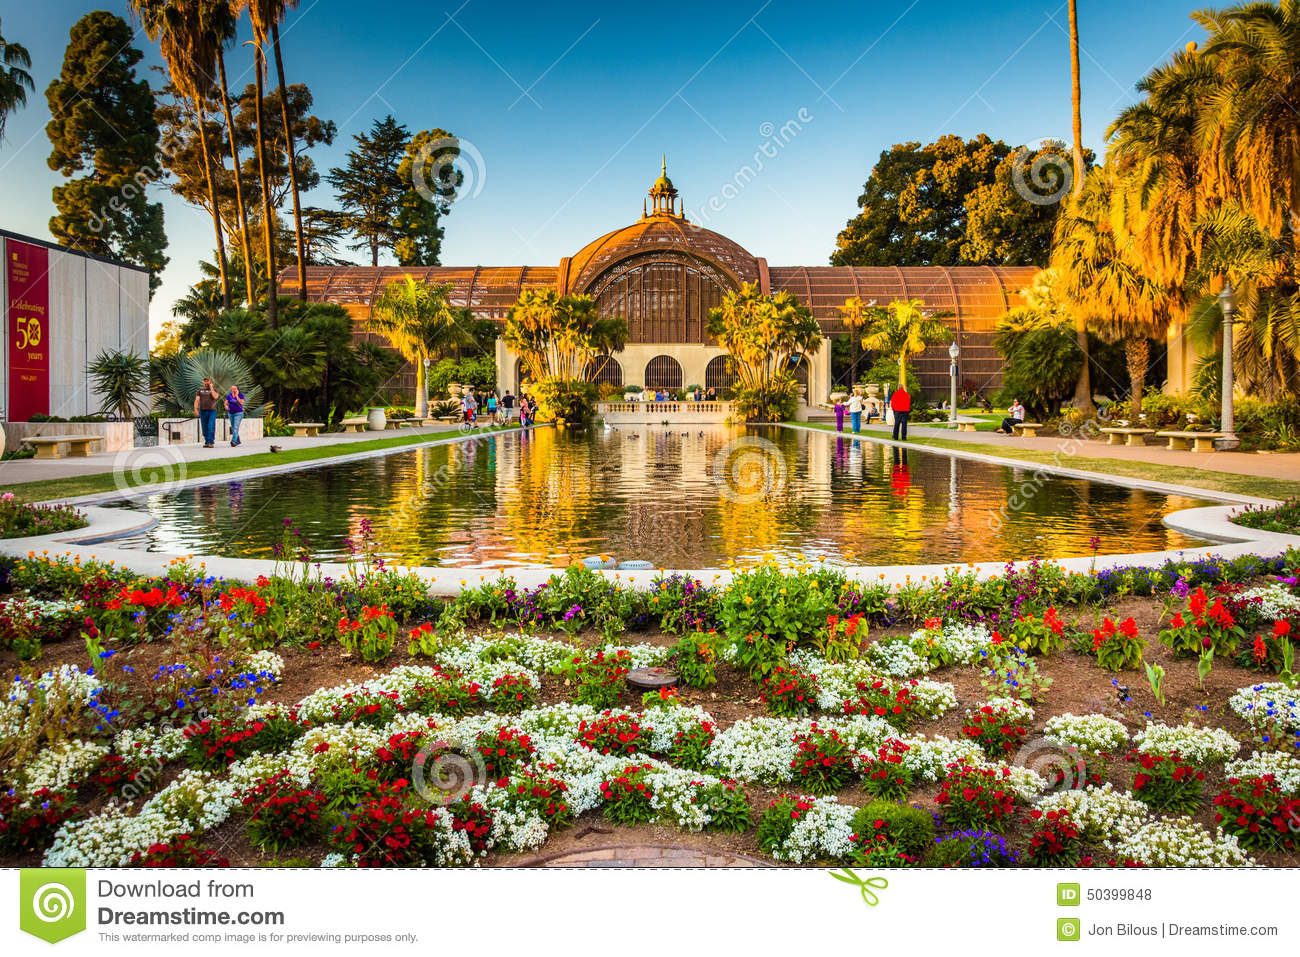 The Botanical Building And The Lily Pond, In Balboa Park.